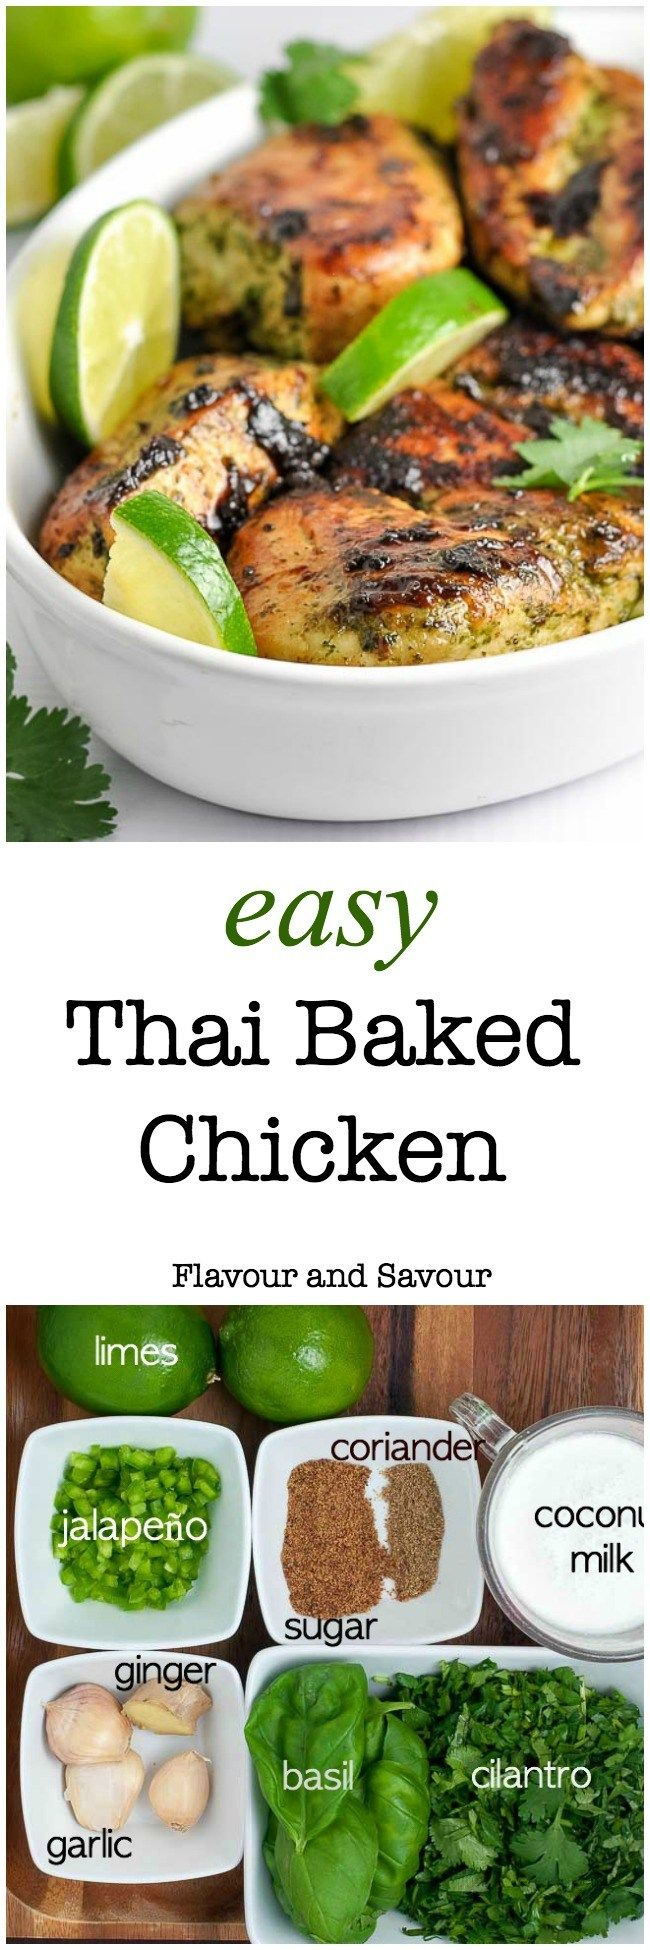 Easy Thai Baked Chicken. An easy make-ahead meal for busy nights, full of your favourite Thai flavours. The marinade for this easy recipe blends and balances those flavours harmoniously. Cilantro, jalapeño, ginger, basil, garlic and coriander all play together to produce this aromatic, slightly spicy chicken dish that leaves you wanting more. #Thai #thighs #paleo #glutenfree #dairyfree